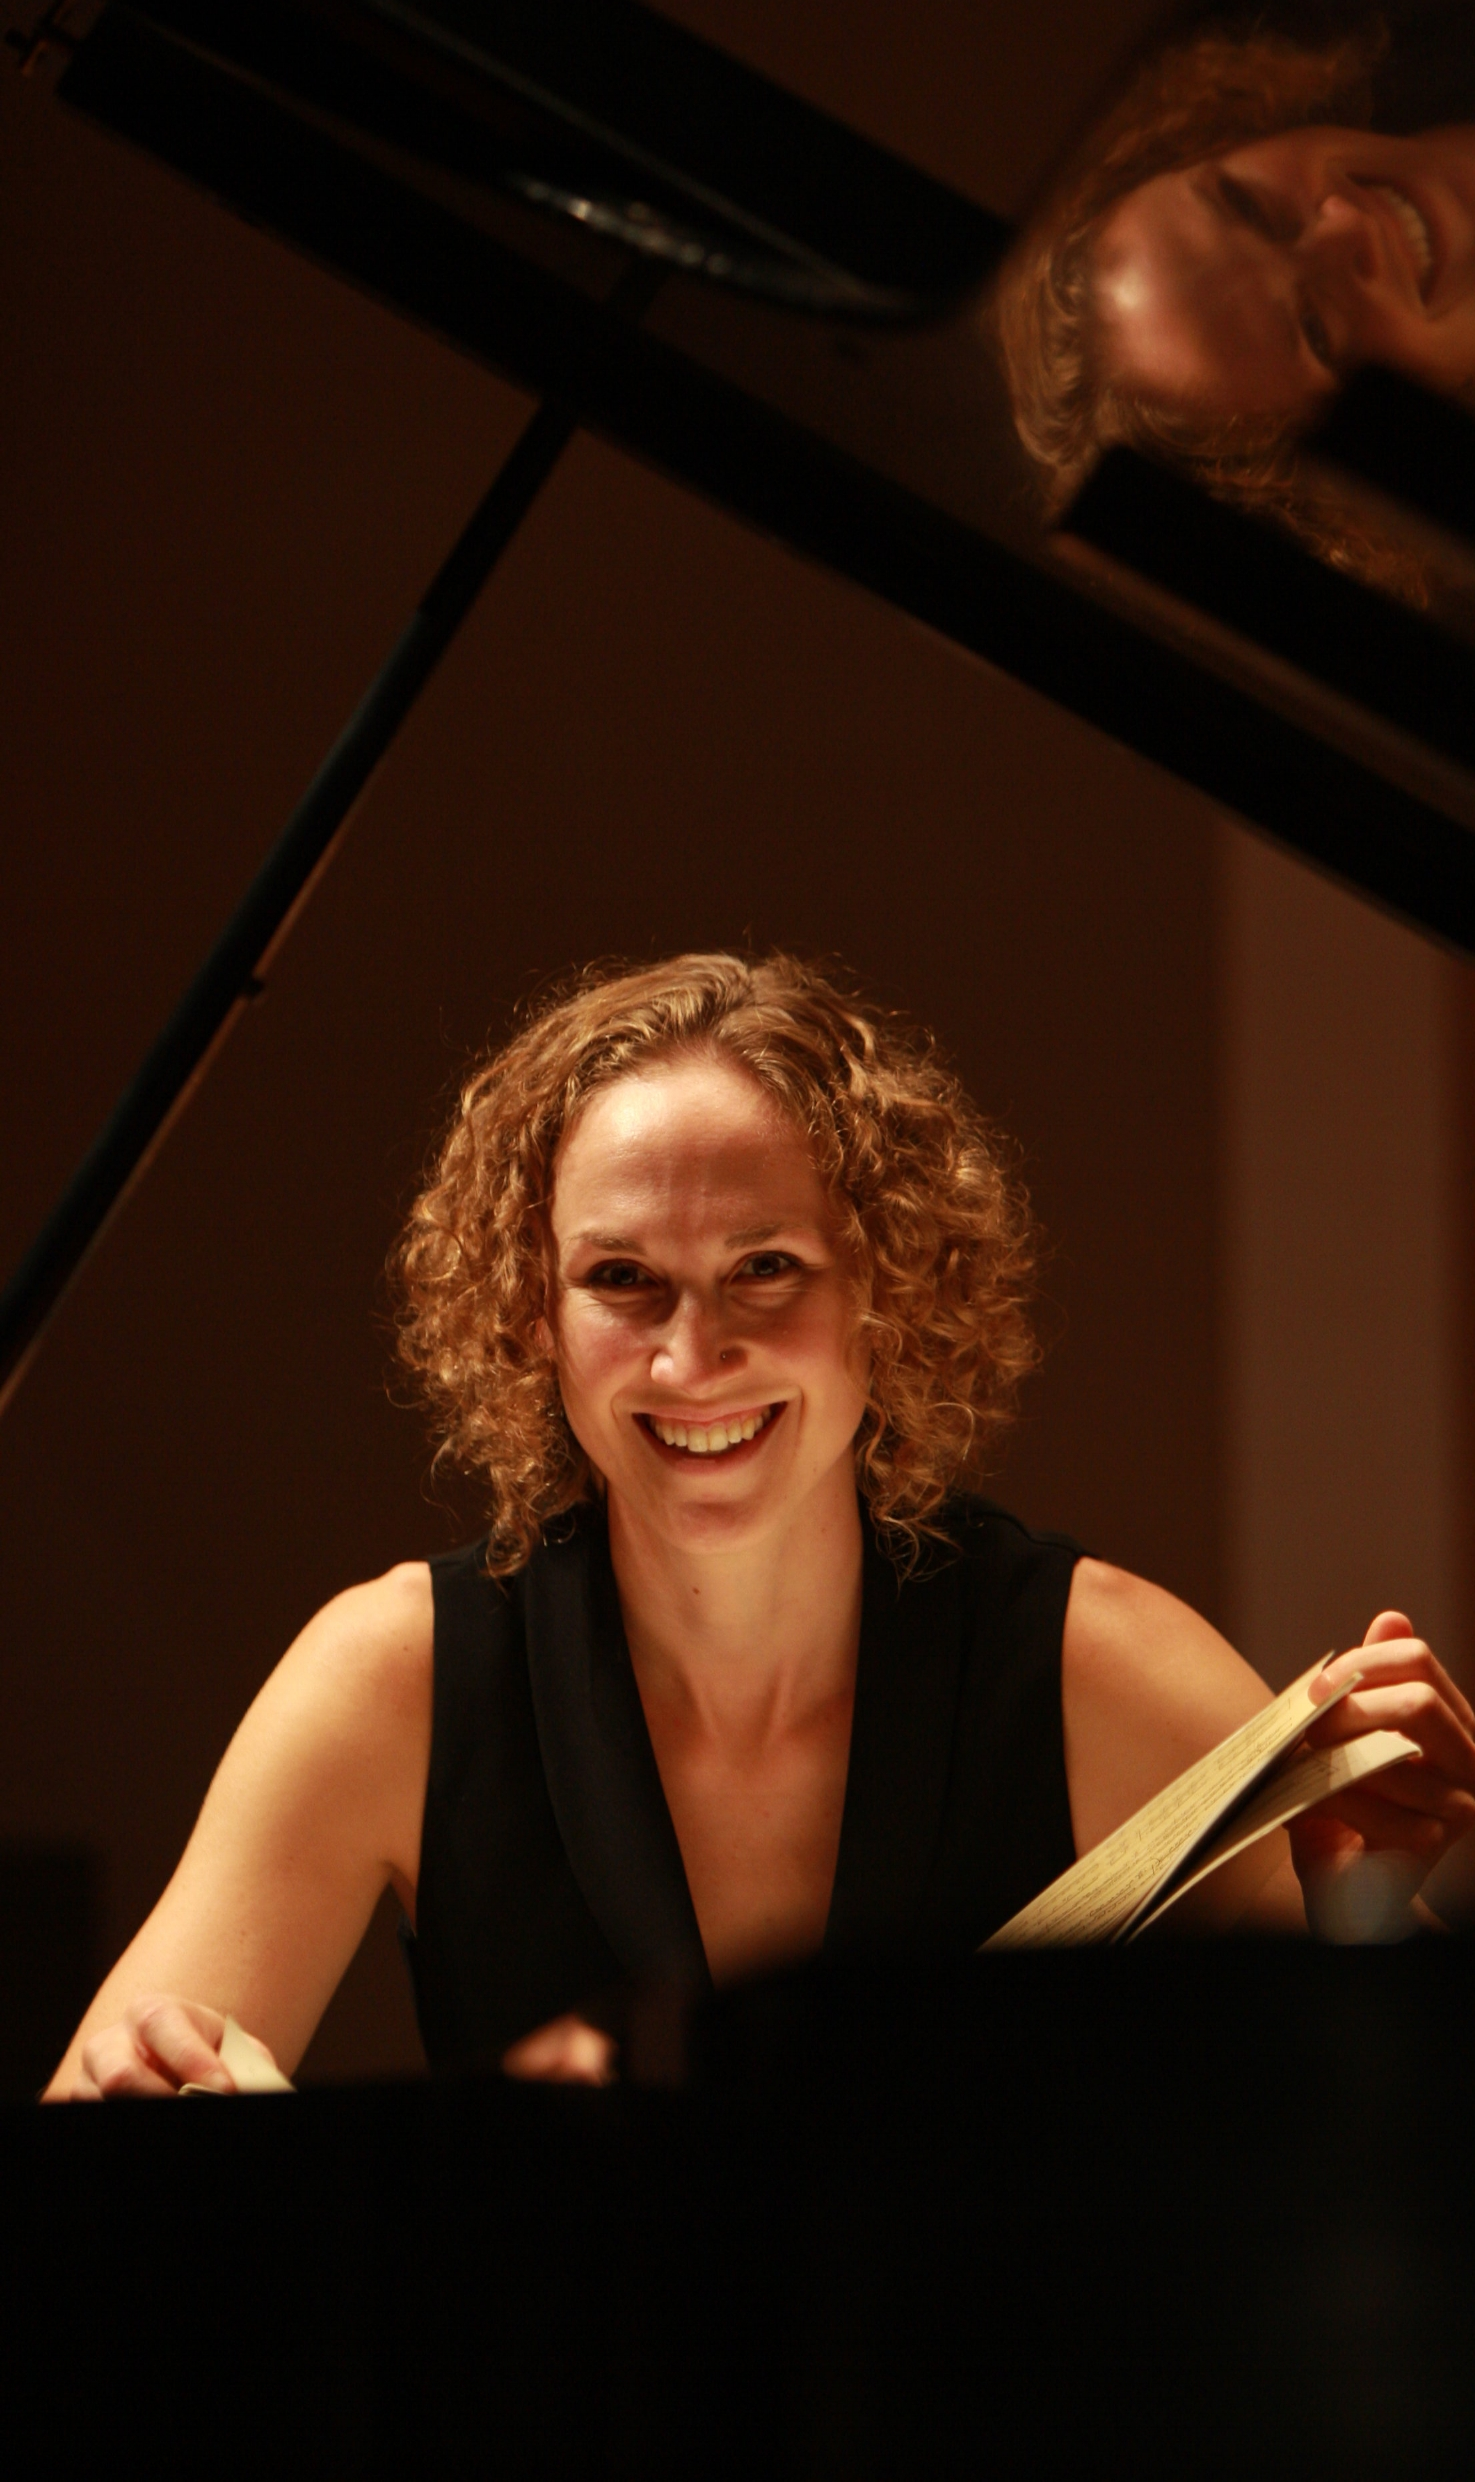 Leah K. Siltberg - Pianist Leah Siltberg is an active and sought-after performer.  Based in Minneapolis, Siltberg has performed or recorded with the Saint Paul Chamber Orchestra, Weisman Art Museum's SONIC WAM, the James Sewell Ballet, Minnesota Public Radio, St. Paul's Schubert Club, the Chamber Music Society of Minnesota, and the American Composers' Forum.  In 2010, Siltberg was featured as a solo performer in Jerusalem's Mozart and Chopin festivals and performed as part of a chamber music tour of the West Bank and the Golan Heights.  In 2008, she performed Beethoven's Fourth Piano Concerto with Minneapolis's Kenwood Symphony.  In 2007, she was part of the premier of a Colombian trio at the White House Conference on the Americas.   Although Siltberg most often concertizes as a collaborative pianist, she has performed both solo and collaborative recitals in the United States, Canada, Central America, the Middle East, Spain, and New Zealand. Siltberg graduated from Toronto's Glenn Gould School of the Royal Conservatory of Music with a Performance Diploma, Bachelor of Music, and Artist Diploma under the tutelage of Boris Lysenko and Peter Longworth and completed a M.Mus. and DMA in collaborative piano and coaching at the University of Minnesota with Timothy Lovelace and Noriko Kawai.